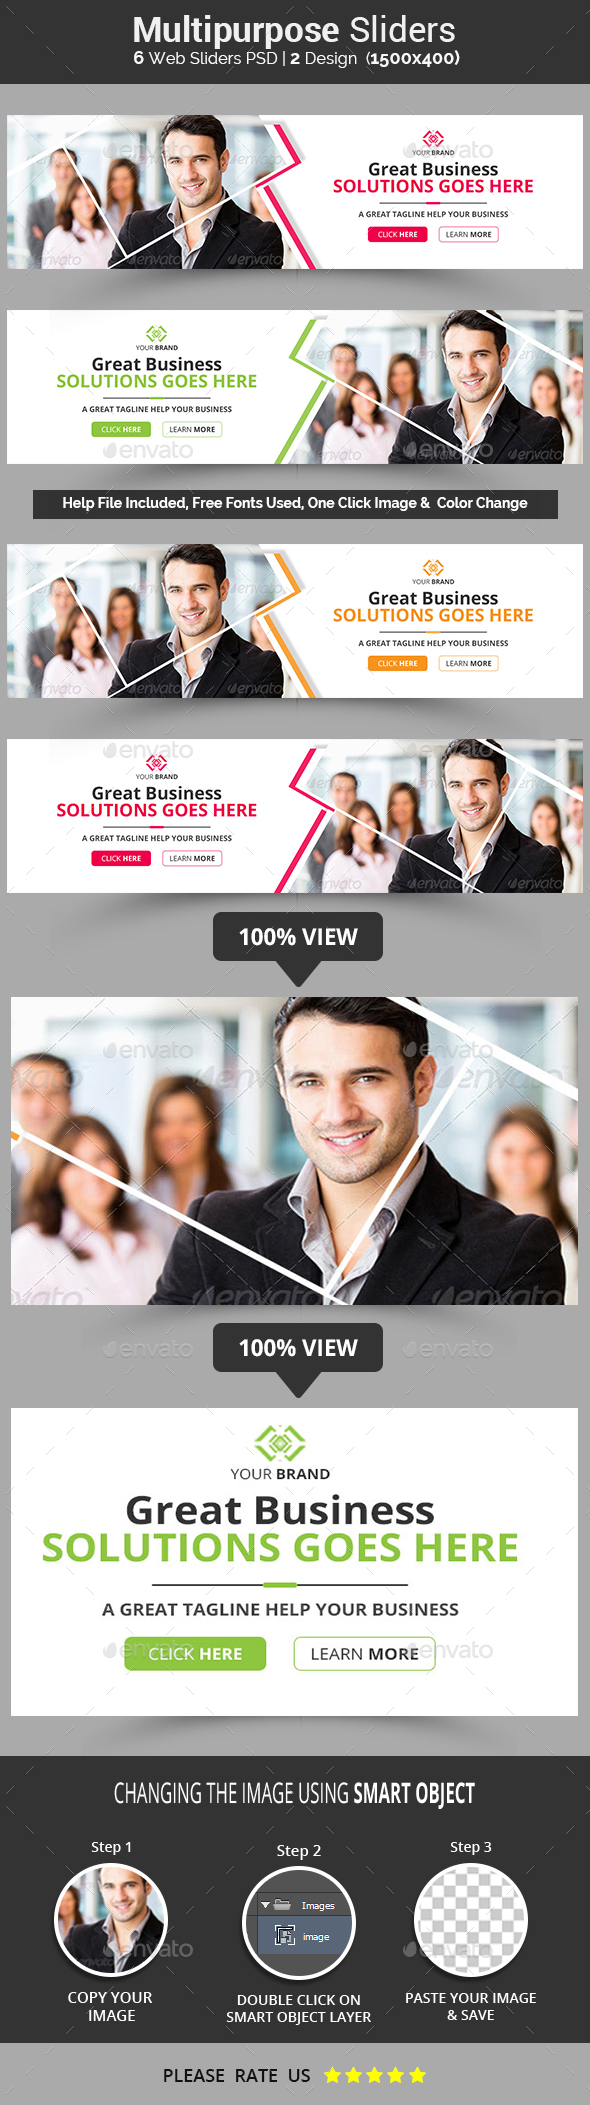 Multipurpose Business Sliders - Sliders & Features Web Elements